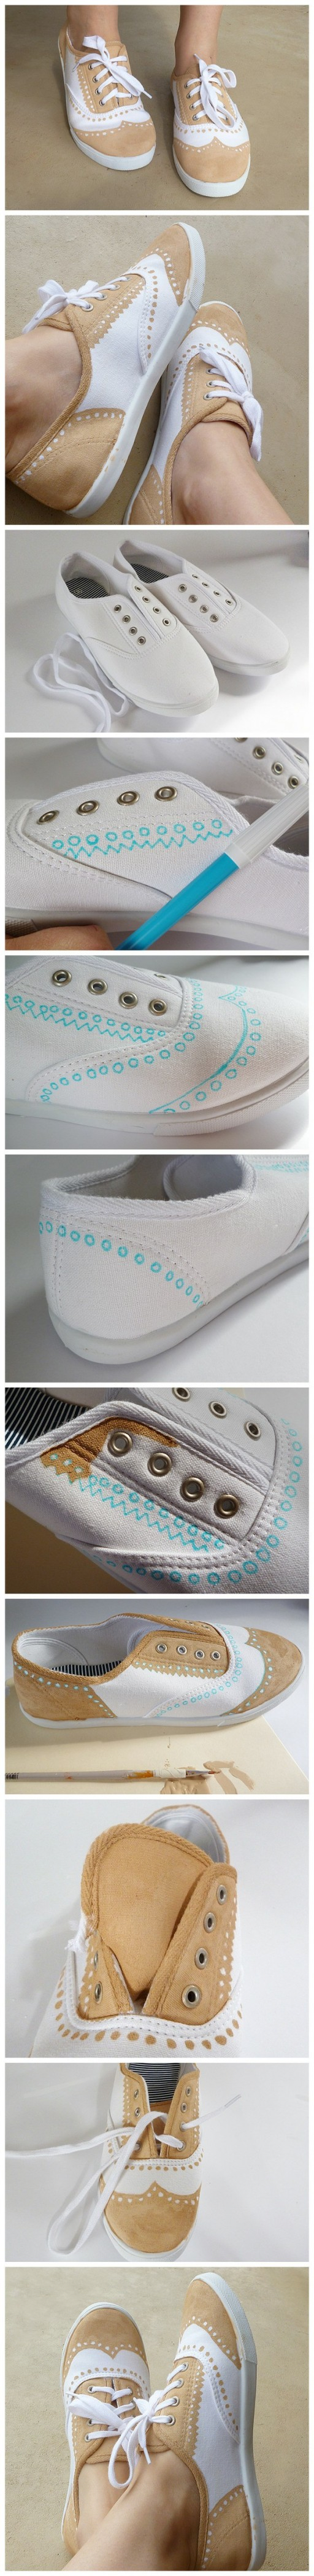 Shoe makeover - how to turn a pair of tennis shoes into beautiful faux painted Oxfords step by step DIY tutorial instructions